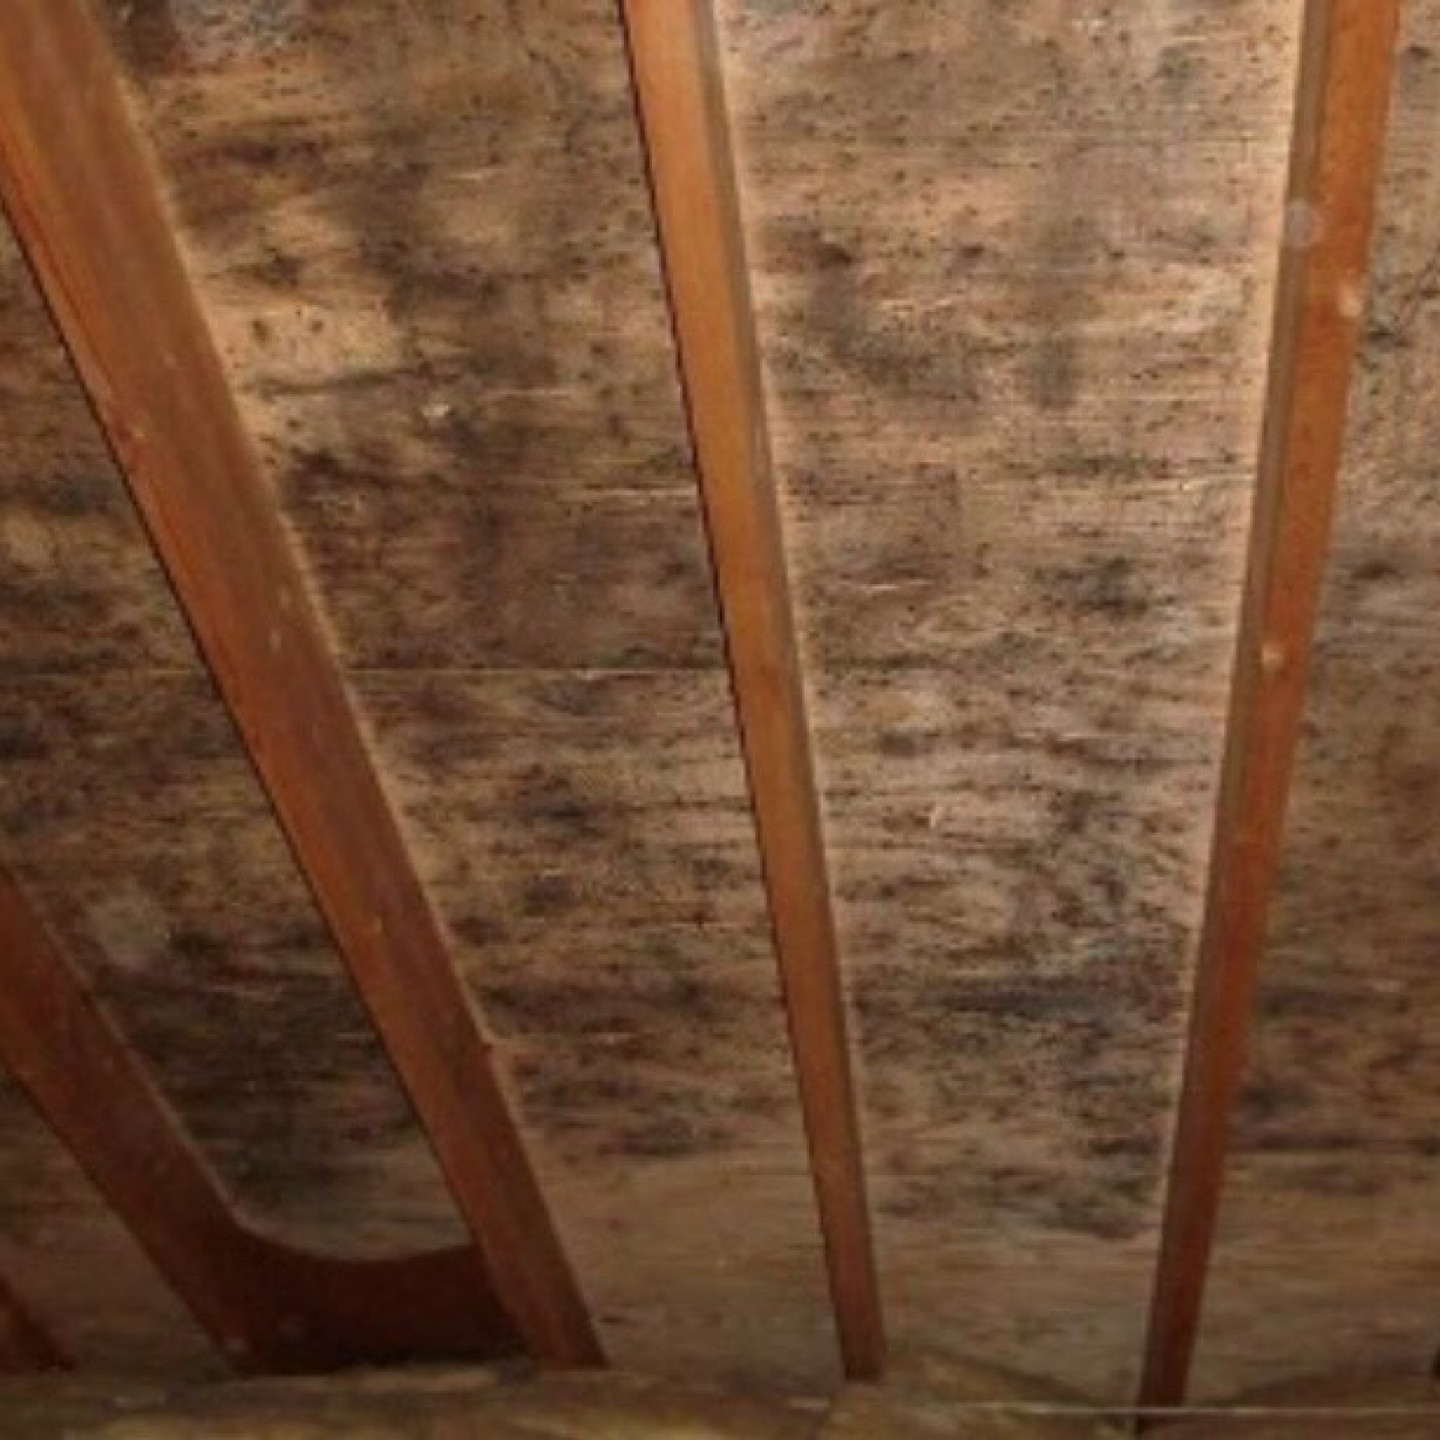 How the attic impacts your comfort and energy bills